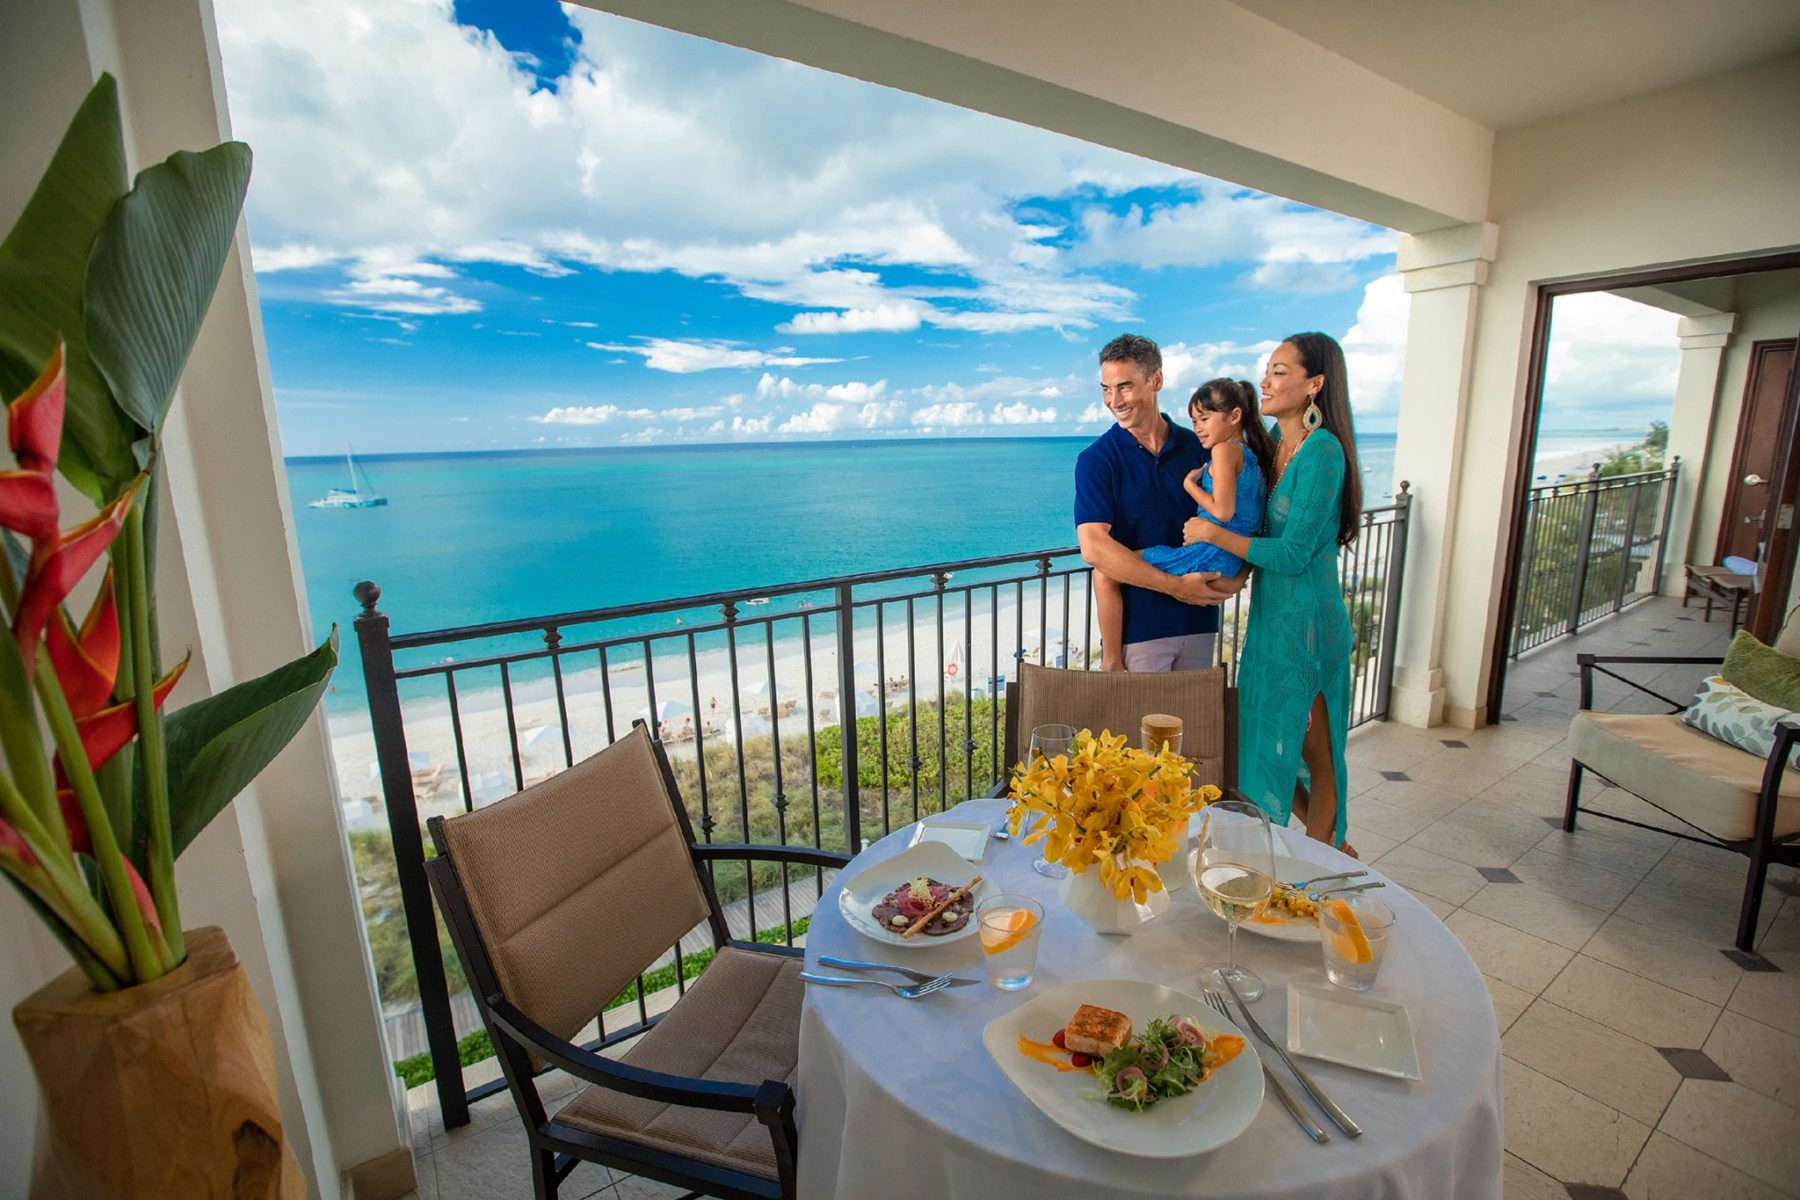 Reasons to Family Vacation at Beaches Turks from 2 Travel Anywhere featured on Nashville Bride Guide